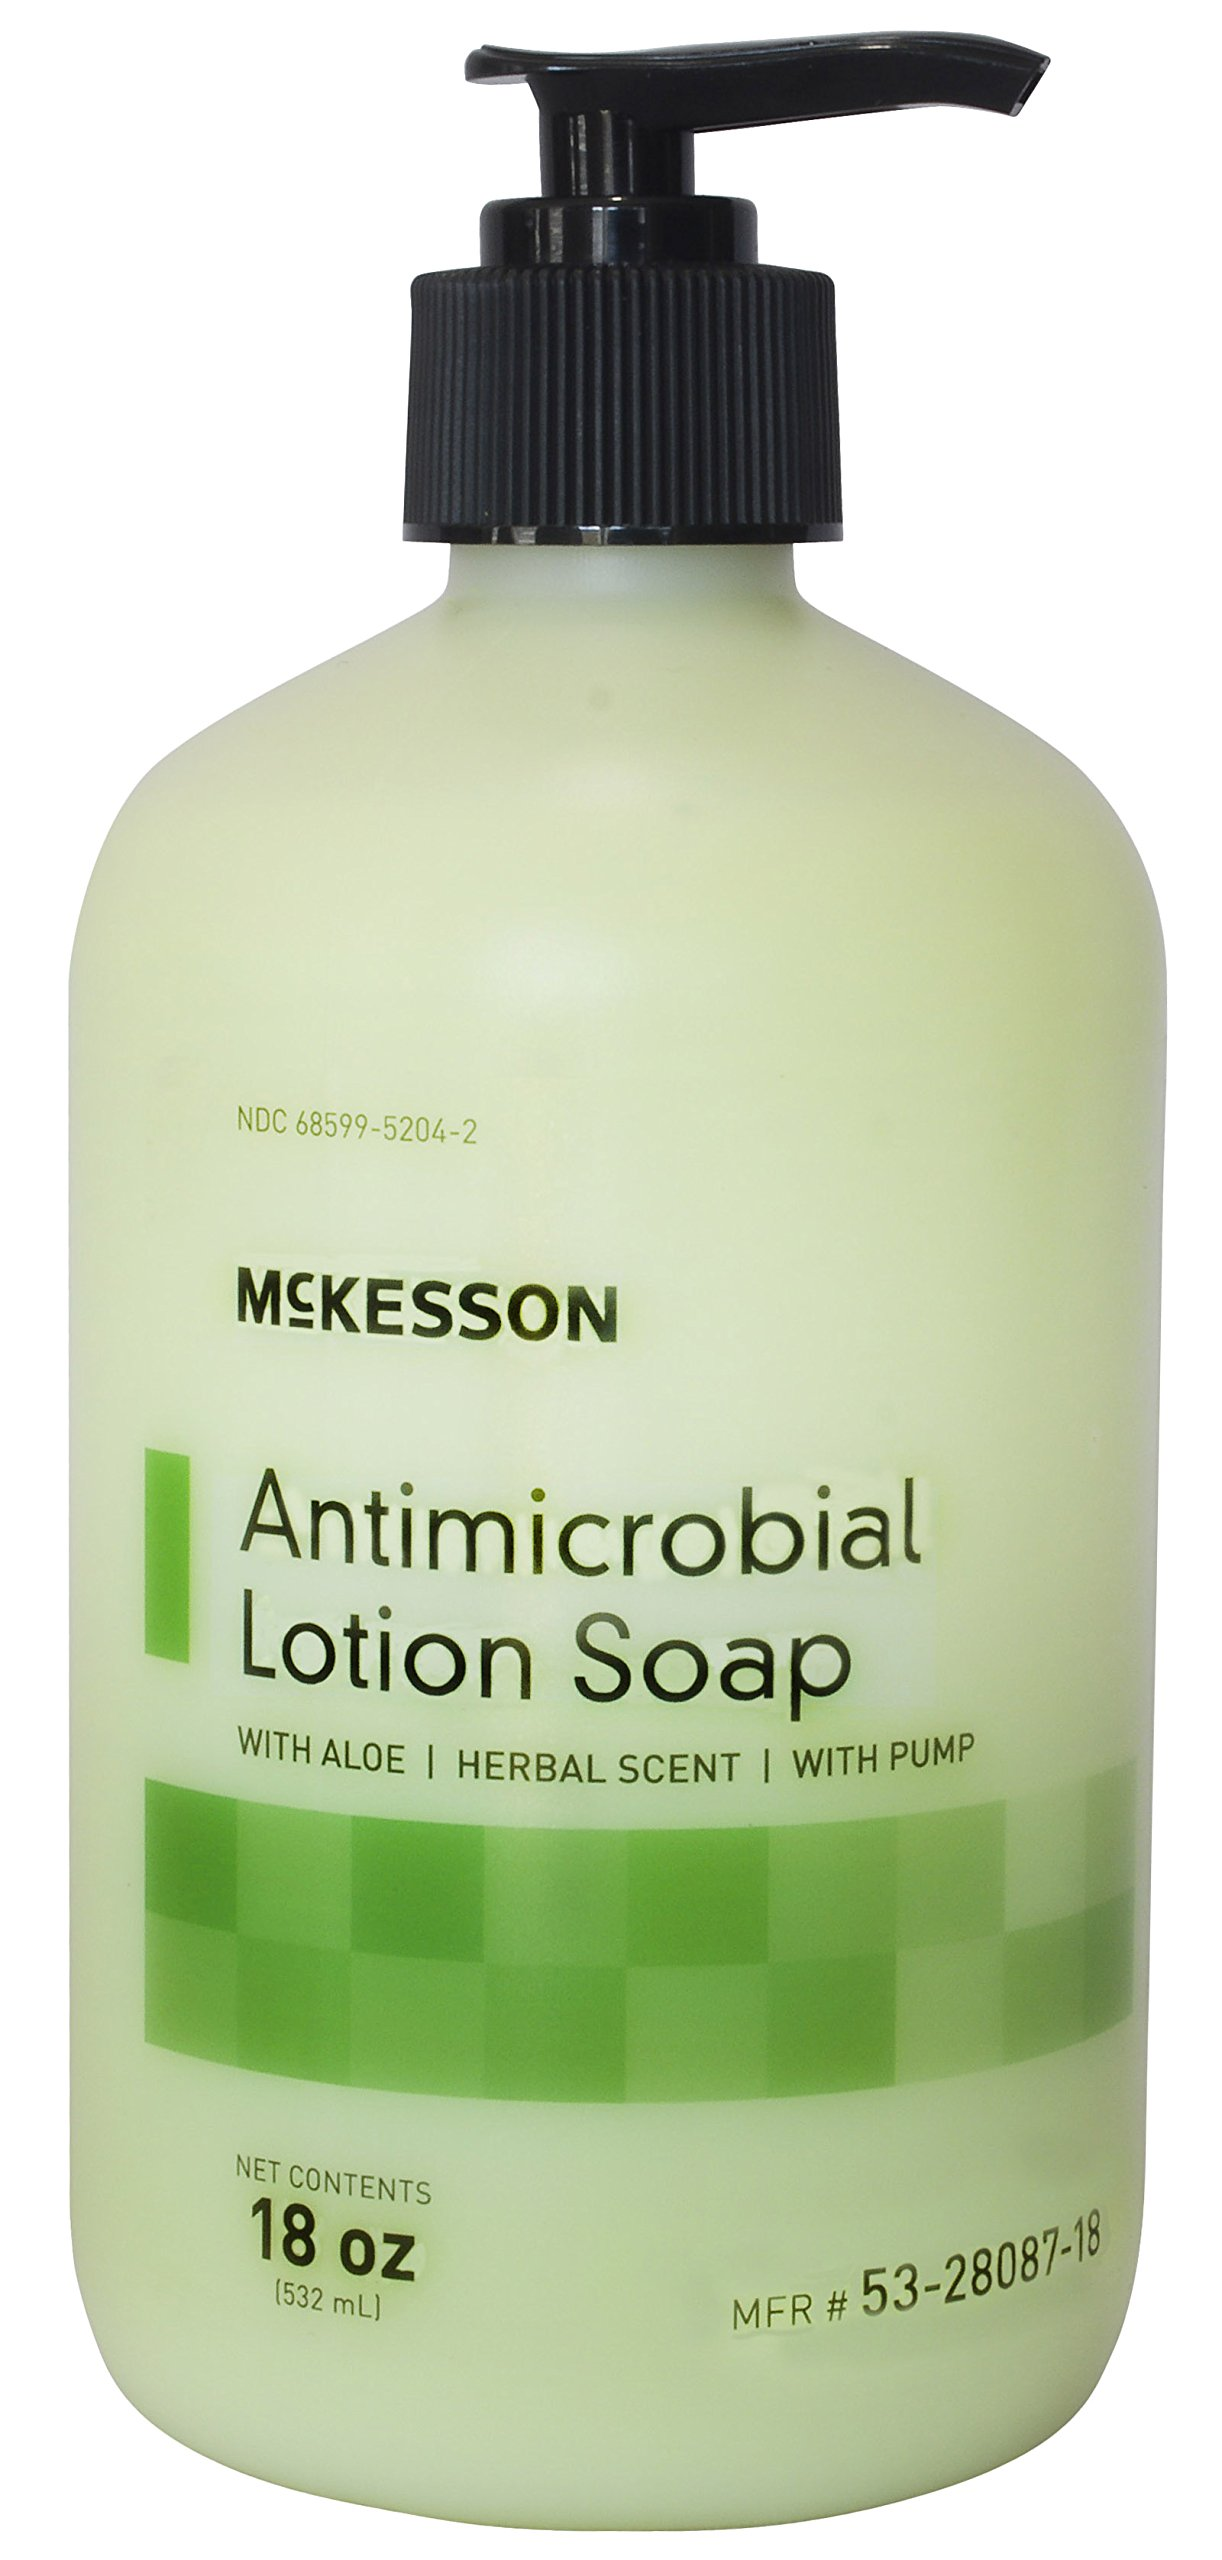 McKesson 53-28087-18 Antimicrobial Lotion Soap with Aloe and Herbal Scent, 18oz Bottle with Pump (Pack of 12) by McKesson